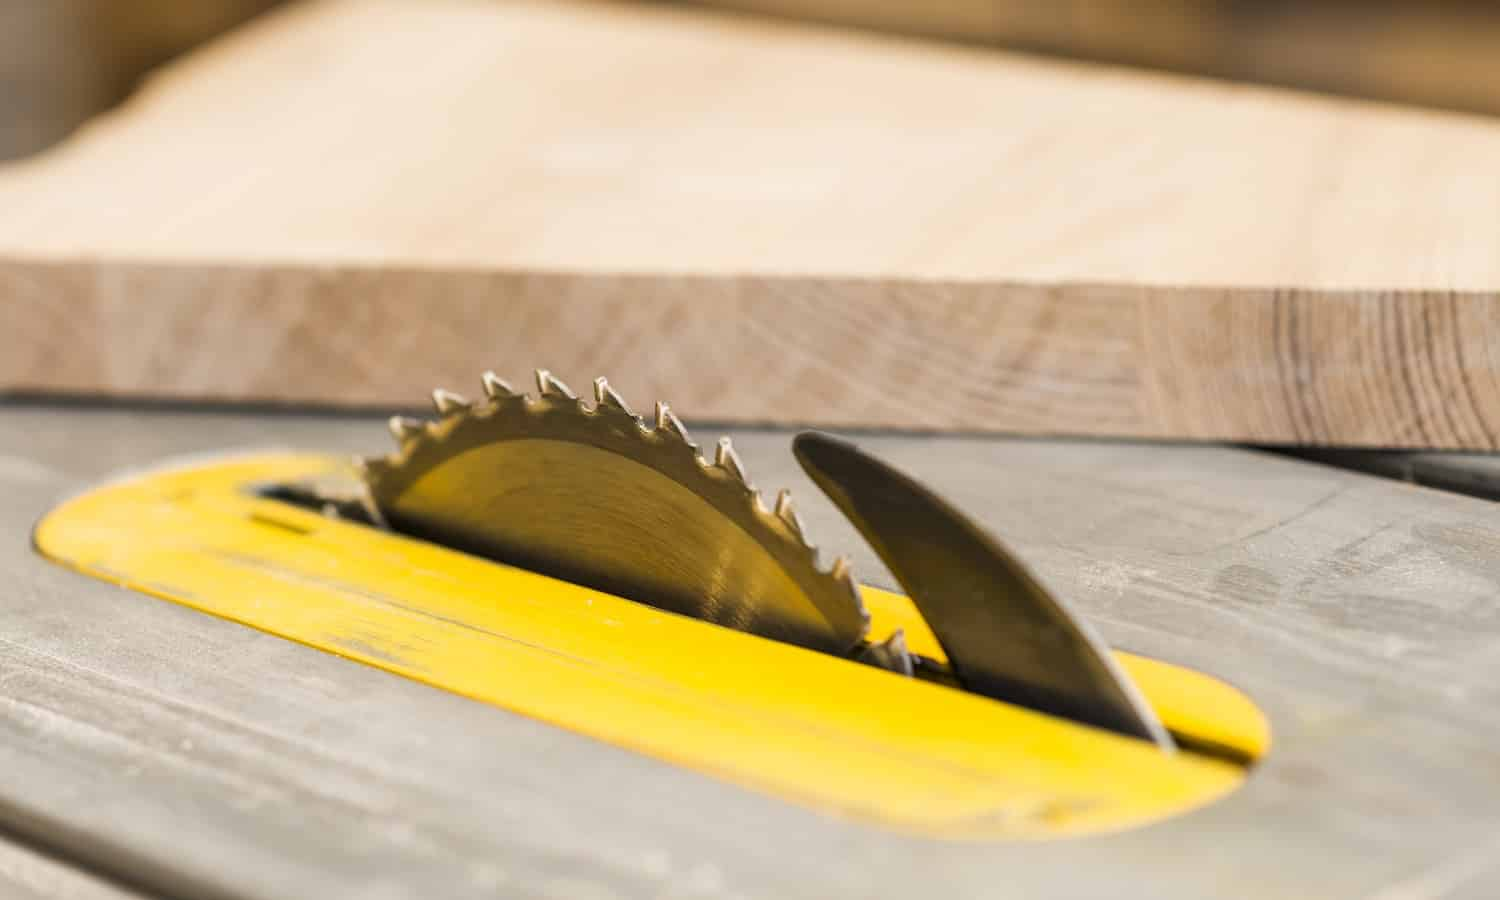 9 Best Hybrid Table Saws Under 1000 in 2020 1